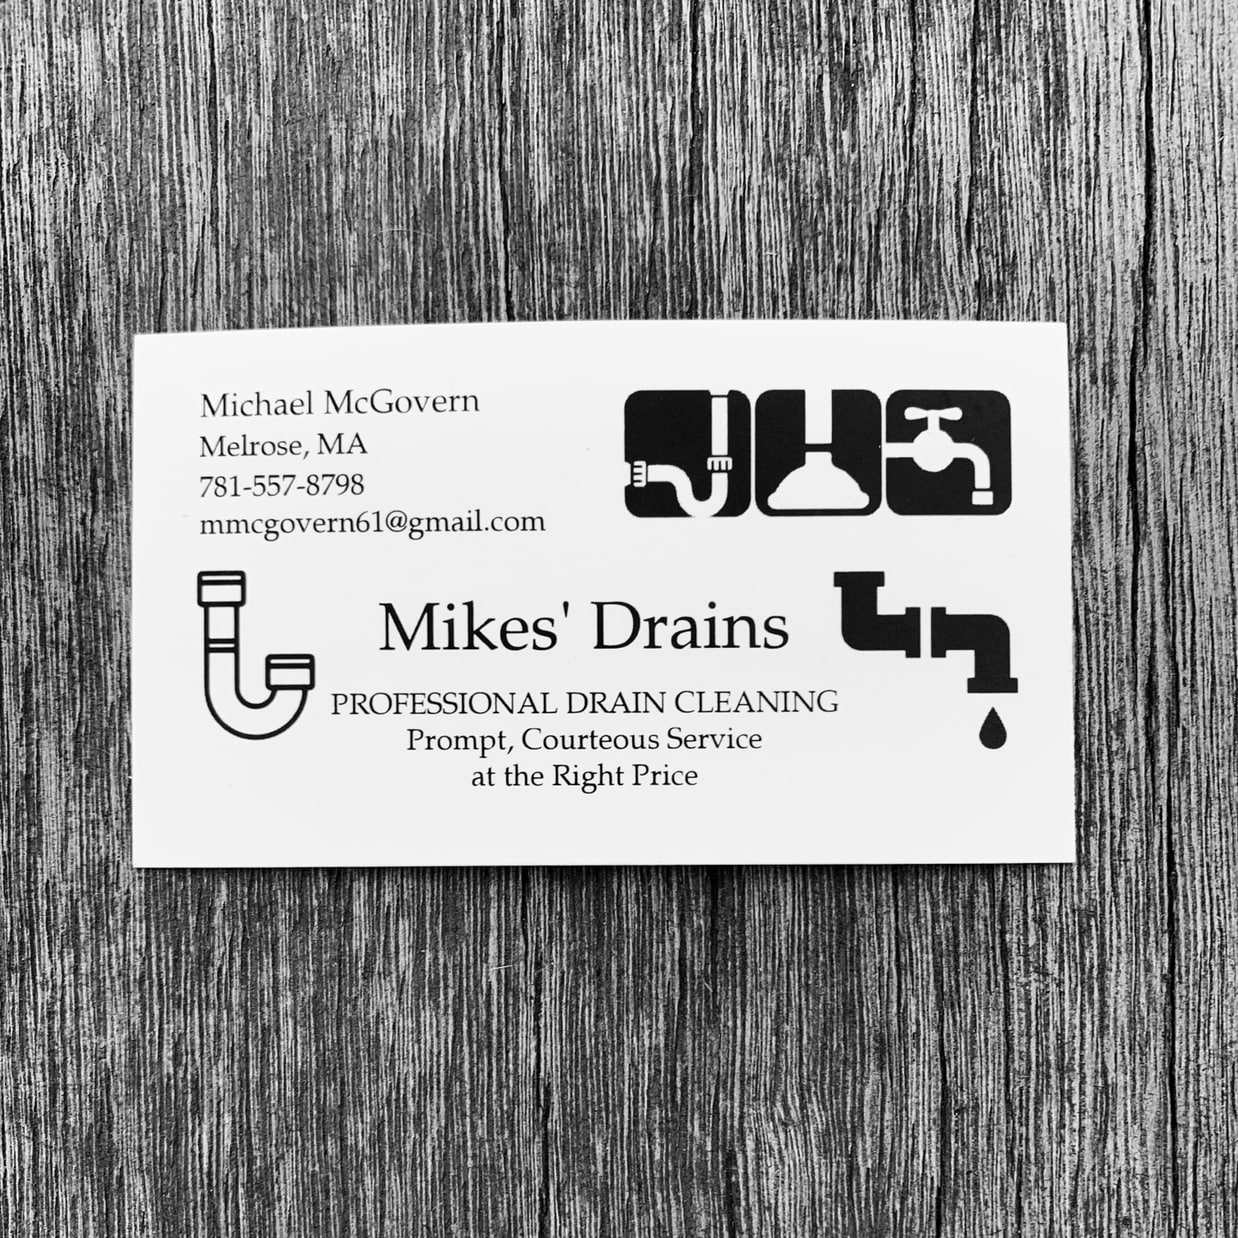 Mikes Drains